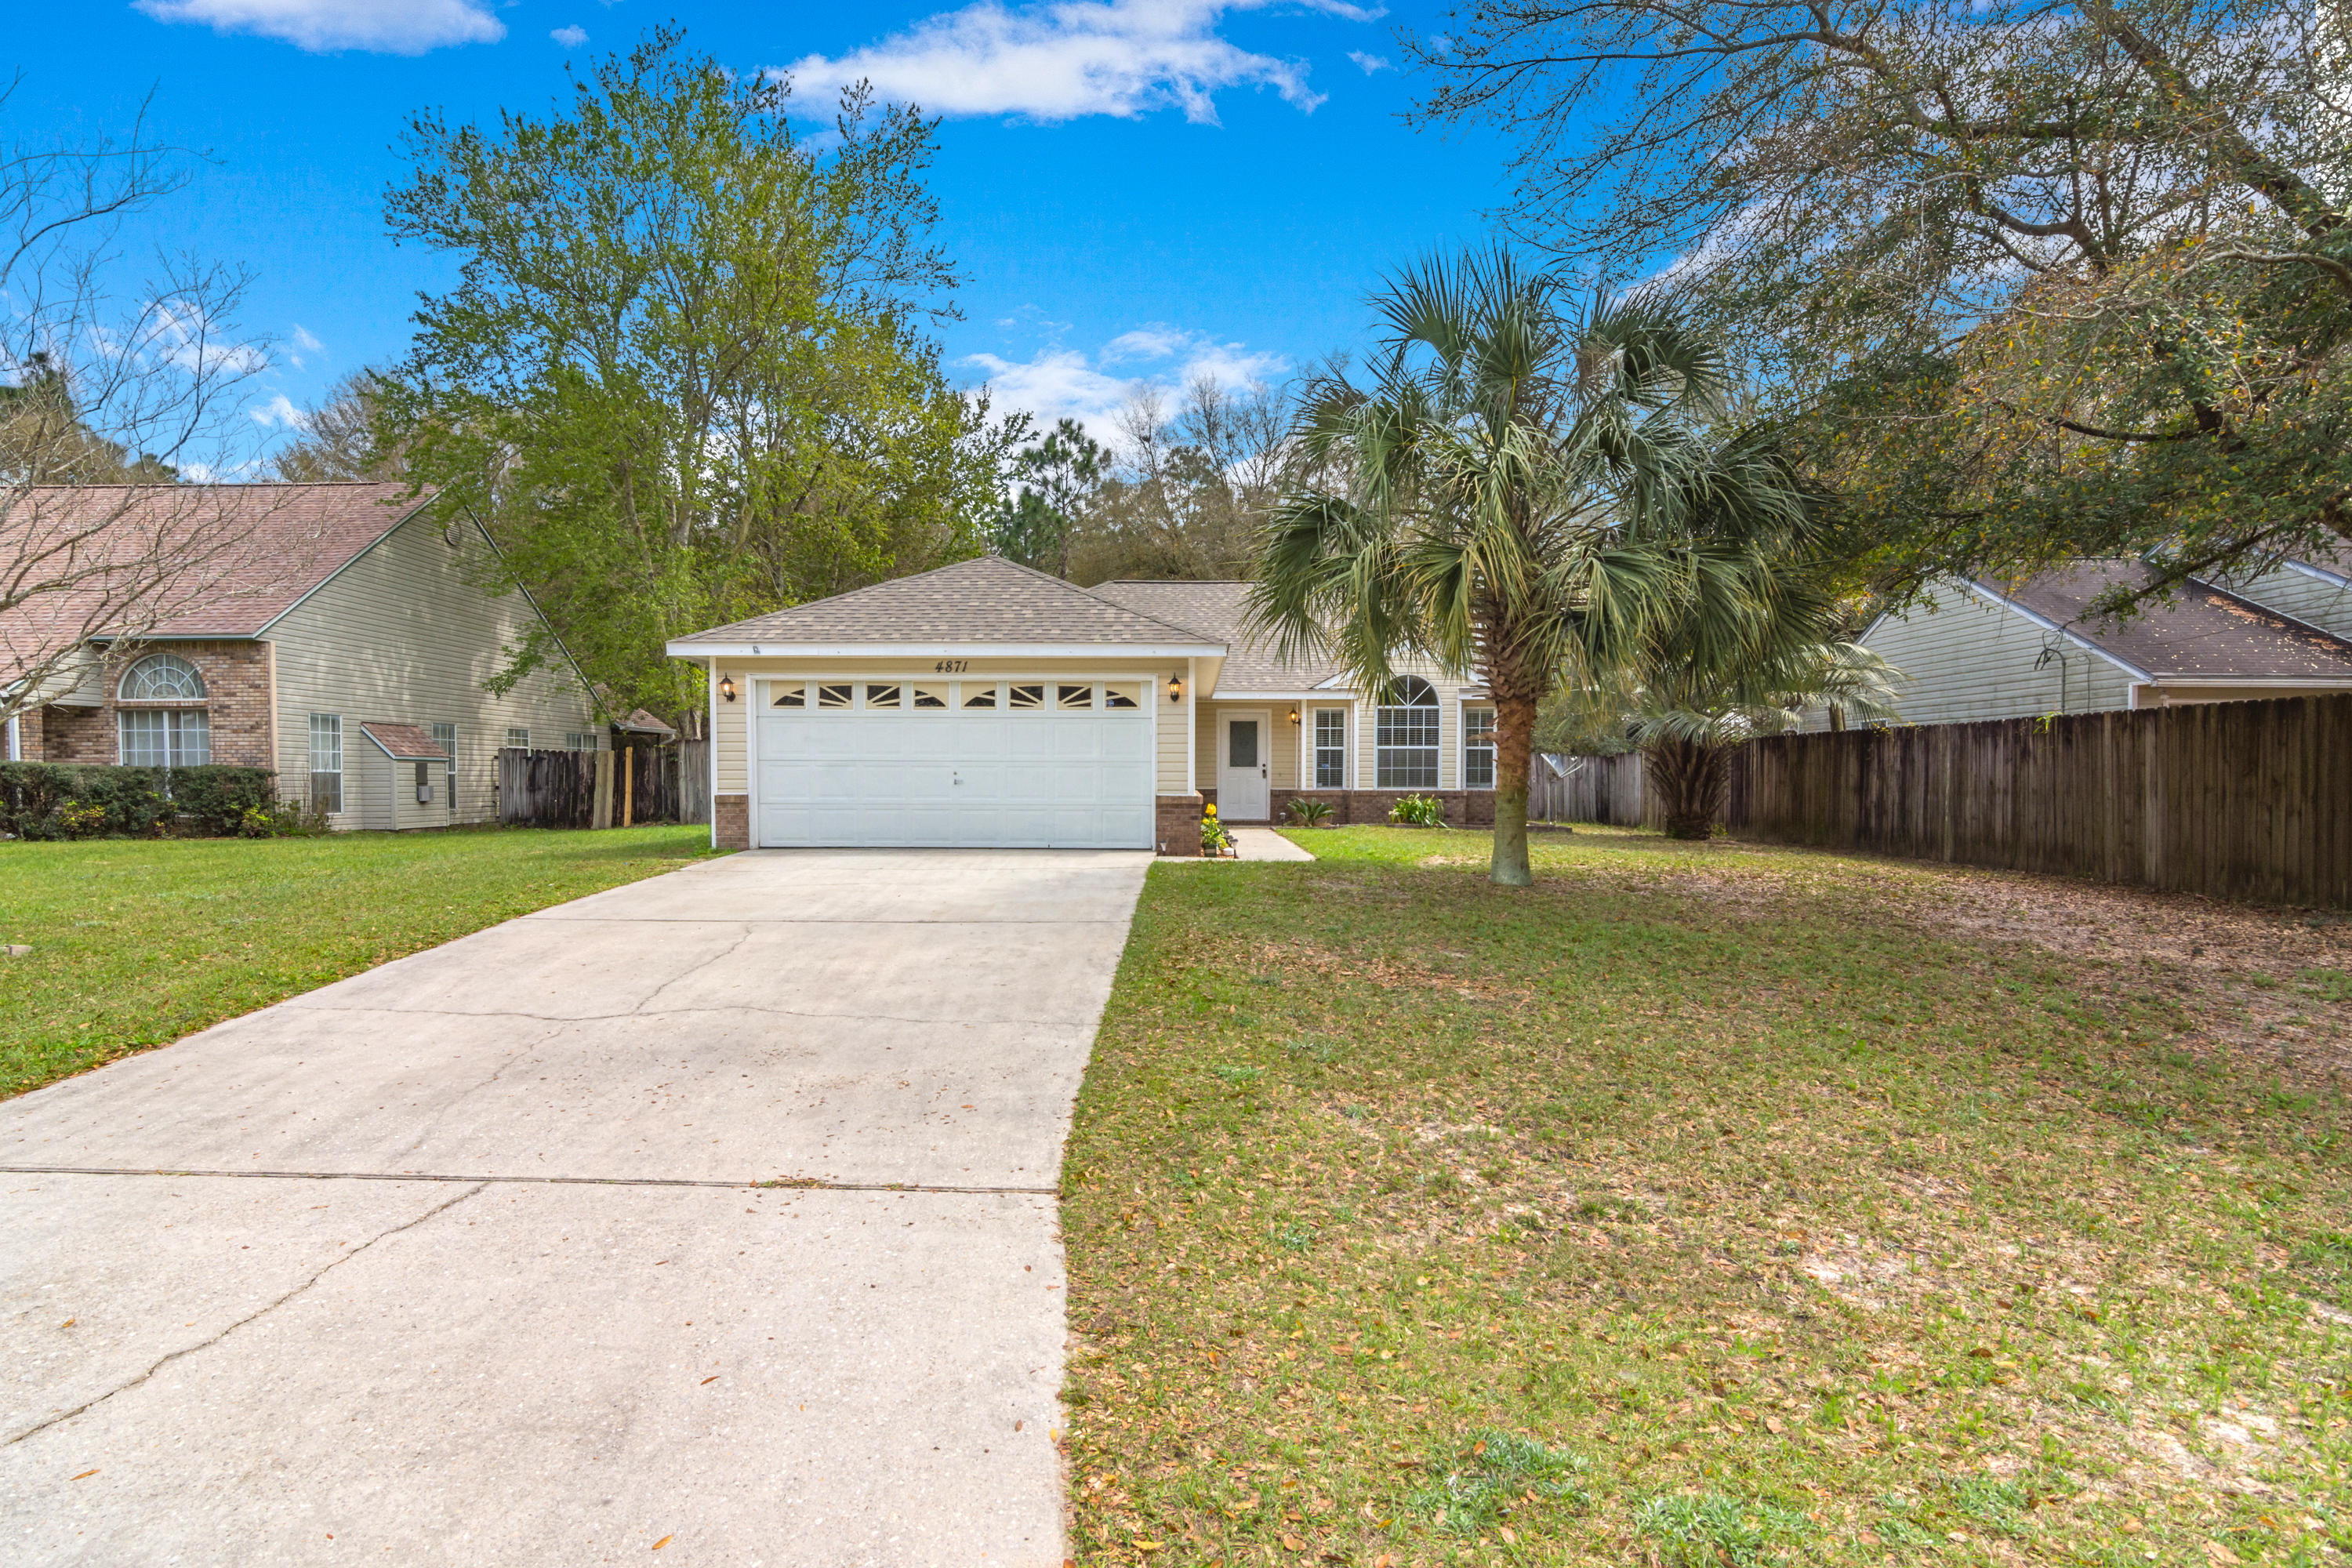 Photo of home for sale at 4871 Kensington, Crestview FL